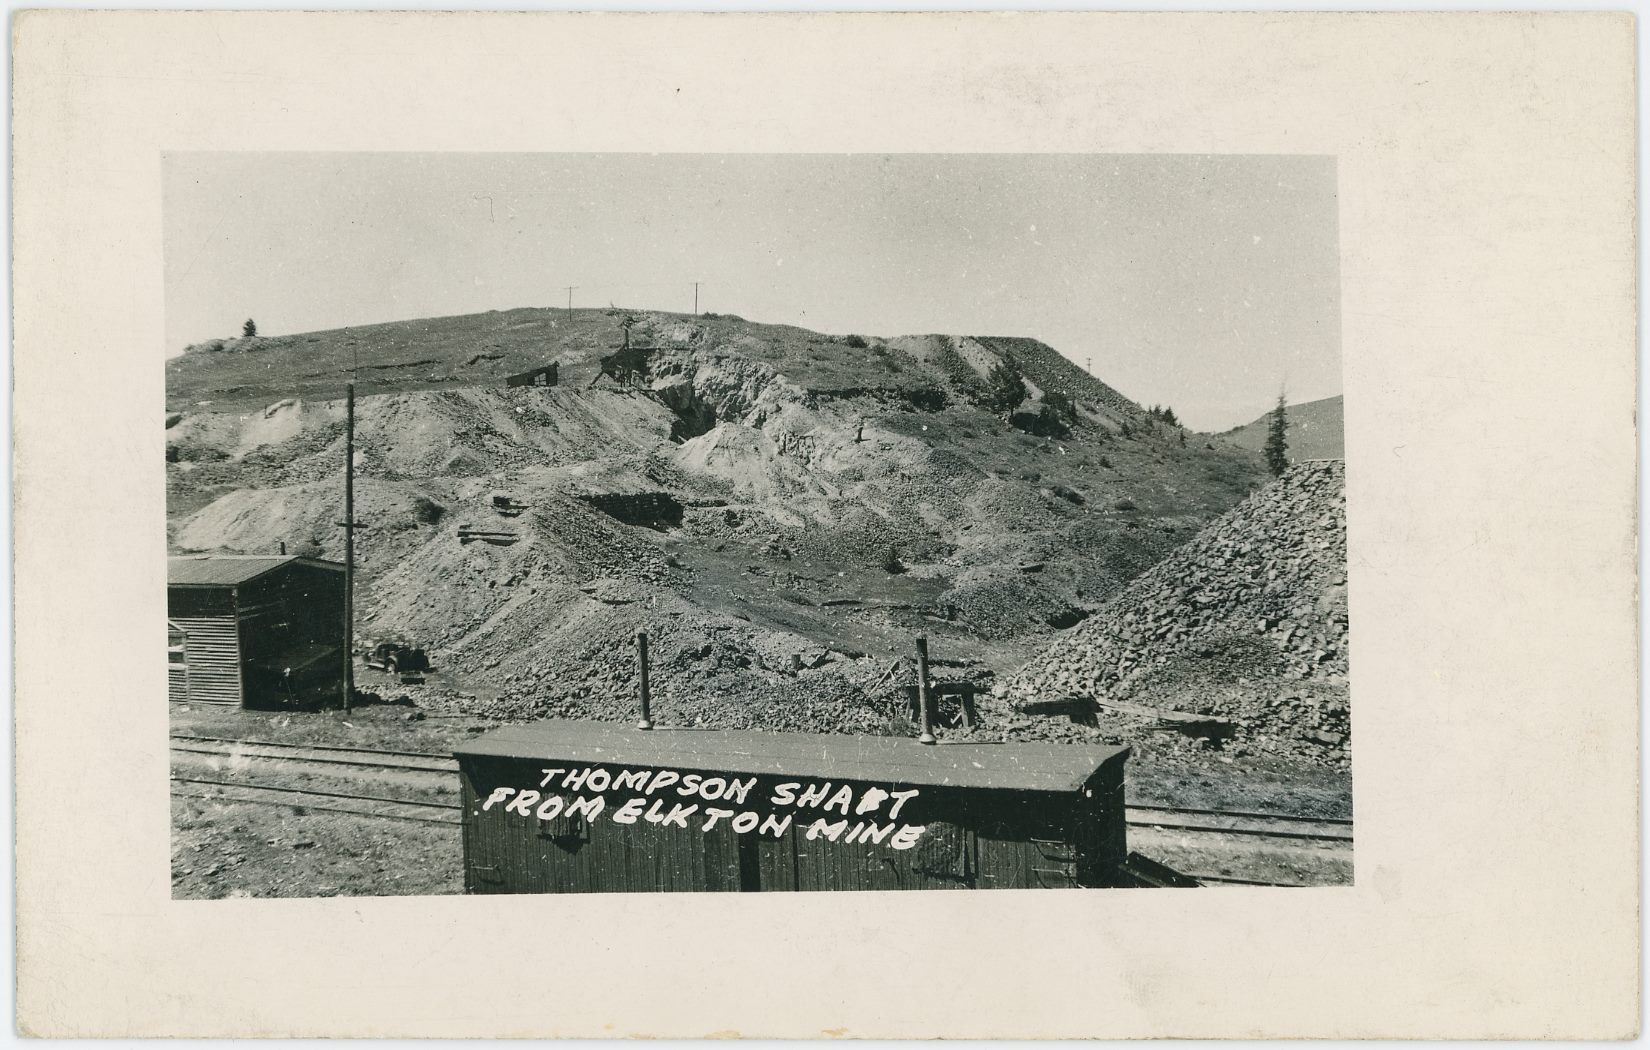 This postcard view of the Thompson Shaft from Elkton Mine sort of helps in telling there was a mine on the Thompson claim where the M.T. switchback up to the Elkton coalbins had its switch.  One can see part of the lower leg of that spur poking up in a fill on the left part of the view - sort of between the two structures seen in the foreground. Head frame is seen behind there again, and a large cut in the rock making up this hill is seen just right of that mine.    Seen in the foreground is the M.T. mainline tracks, which passed the Elkton mine, and who would be to the right and behind the photographer.